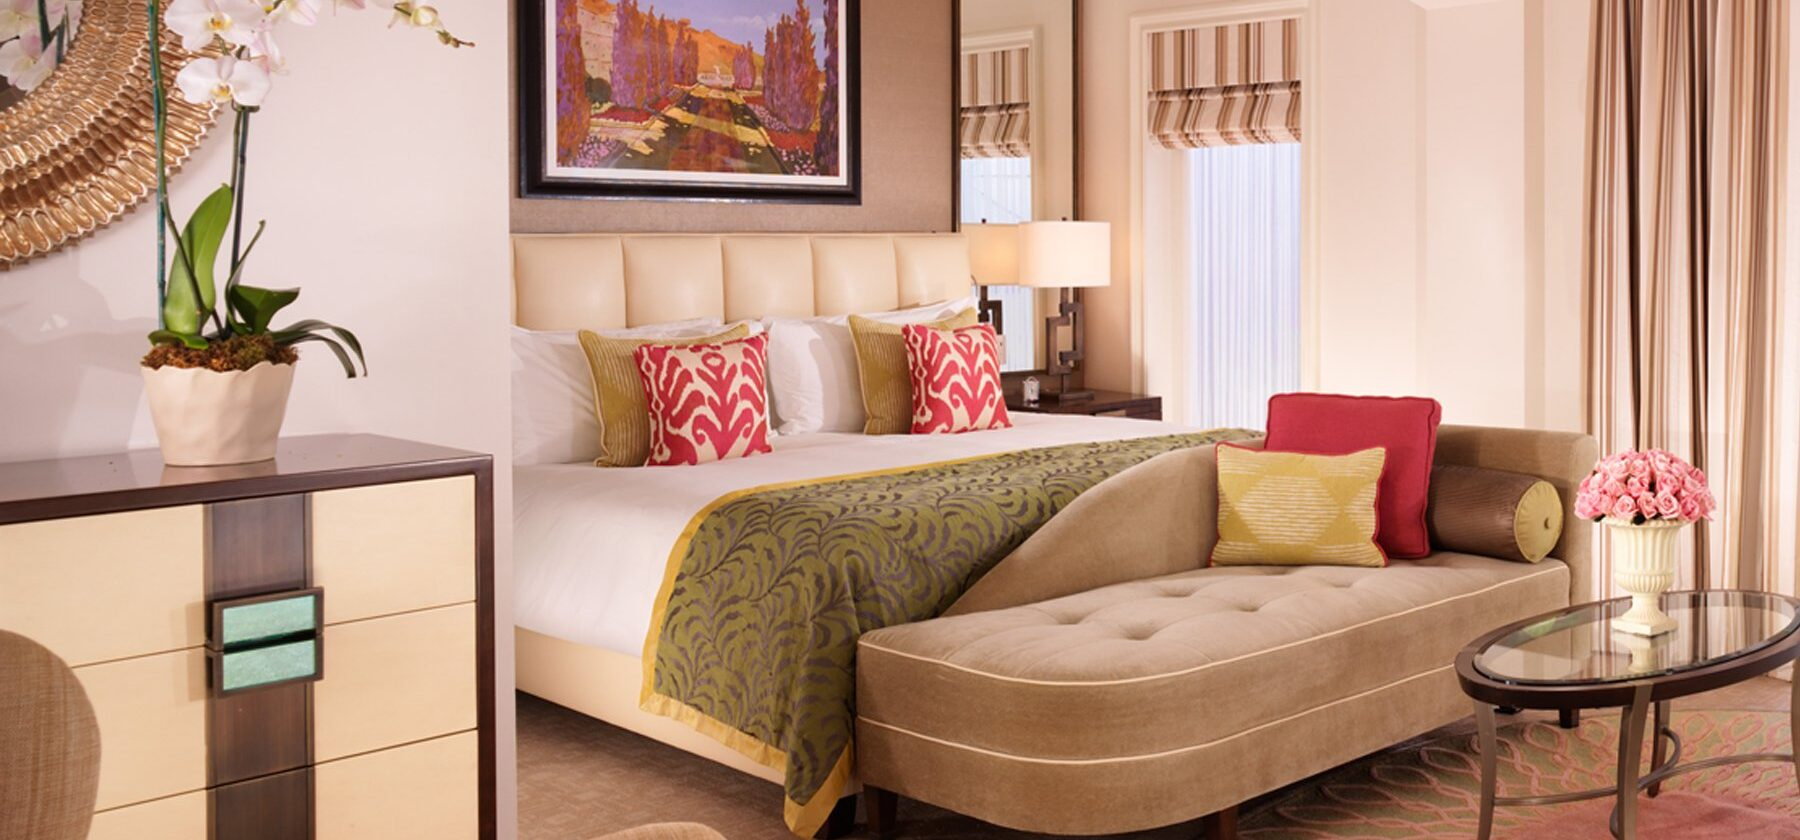 Deluxe Room at The Beverly Hills Hotel with a king size bed